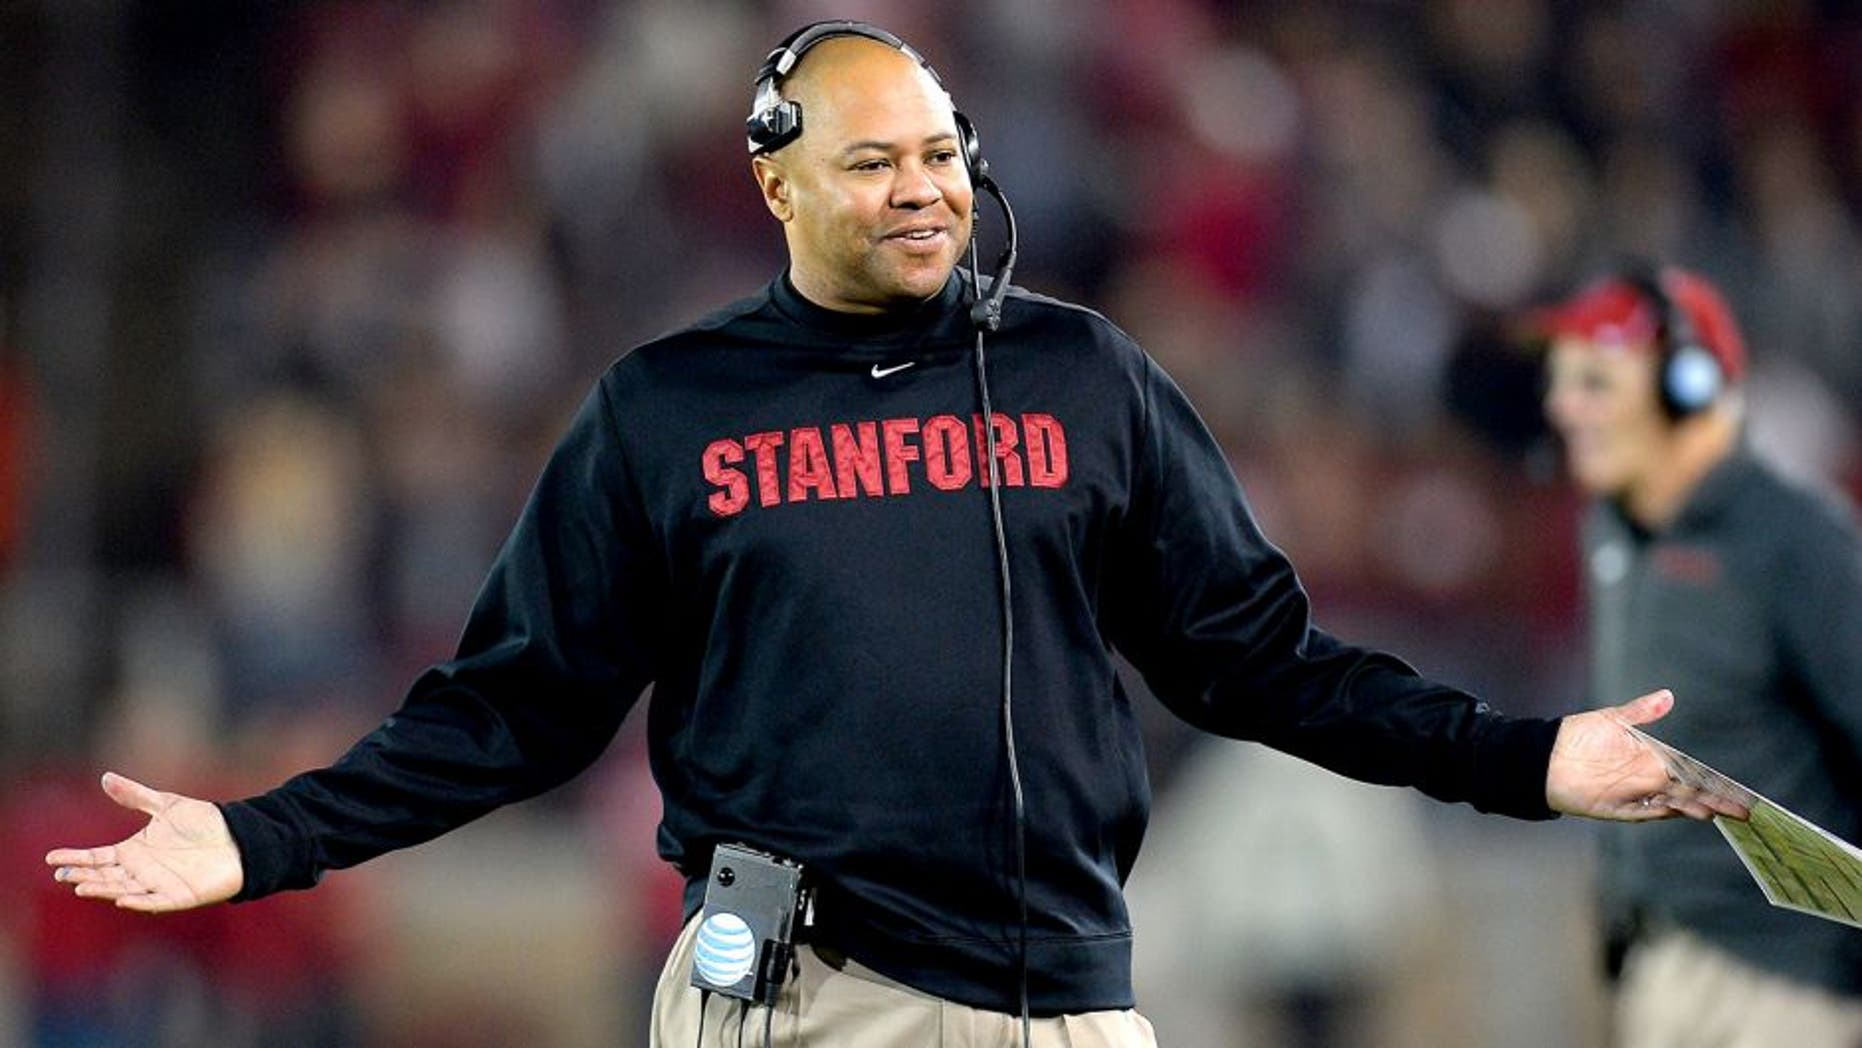 PALO ALTO, CA - NOVEMBER 30: Head Coach David Shaw of the Stanford Cardinals reacts to an officials personal foul call against his team for the Notre Dame Fighting Irish during the third quarter at Stanford Stadium on November 30, 2013 in Palo Alto, California. The call was reversed and no penalty was assessed to Stanford. (Photo by Thearon W. Henderson/Getty Images) *** Local Caption *** David Shaw